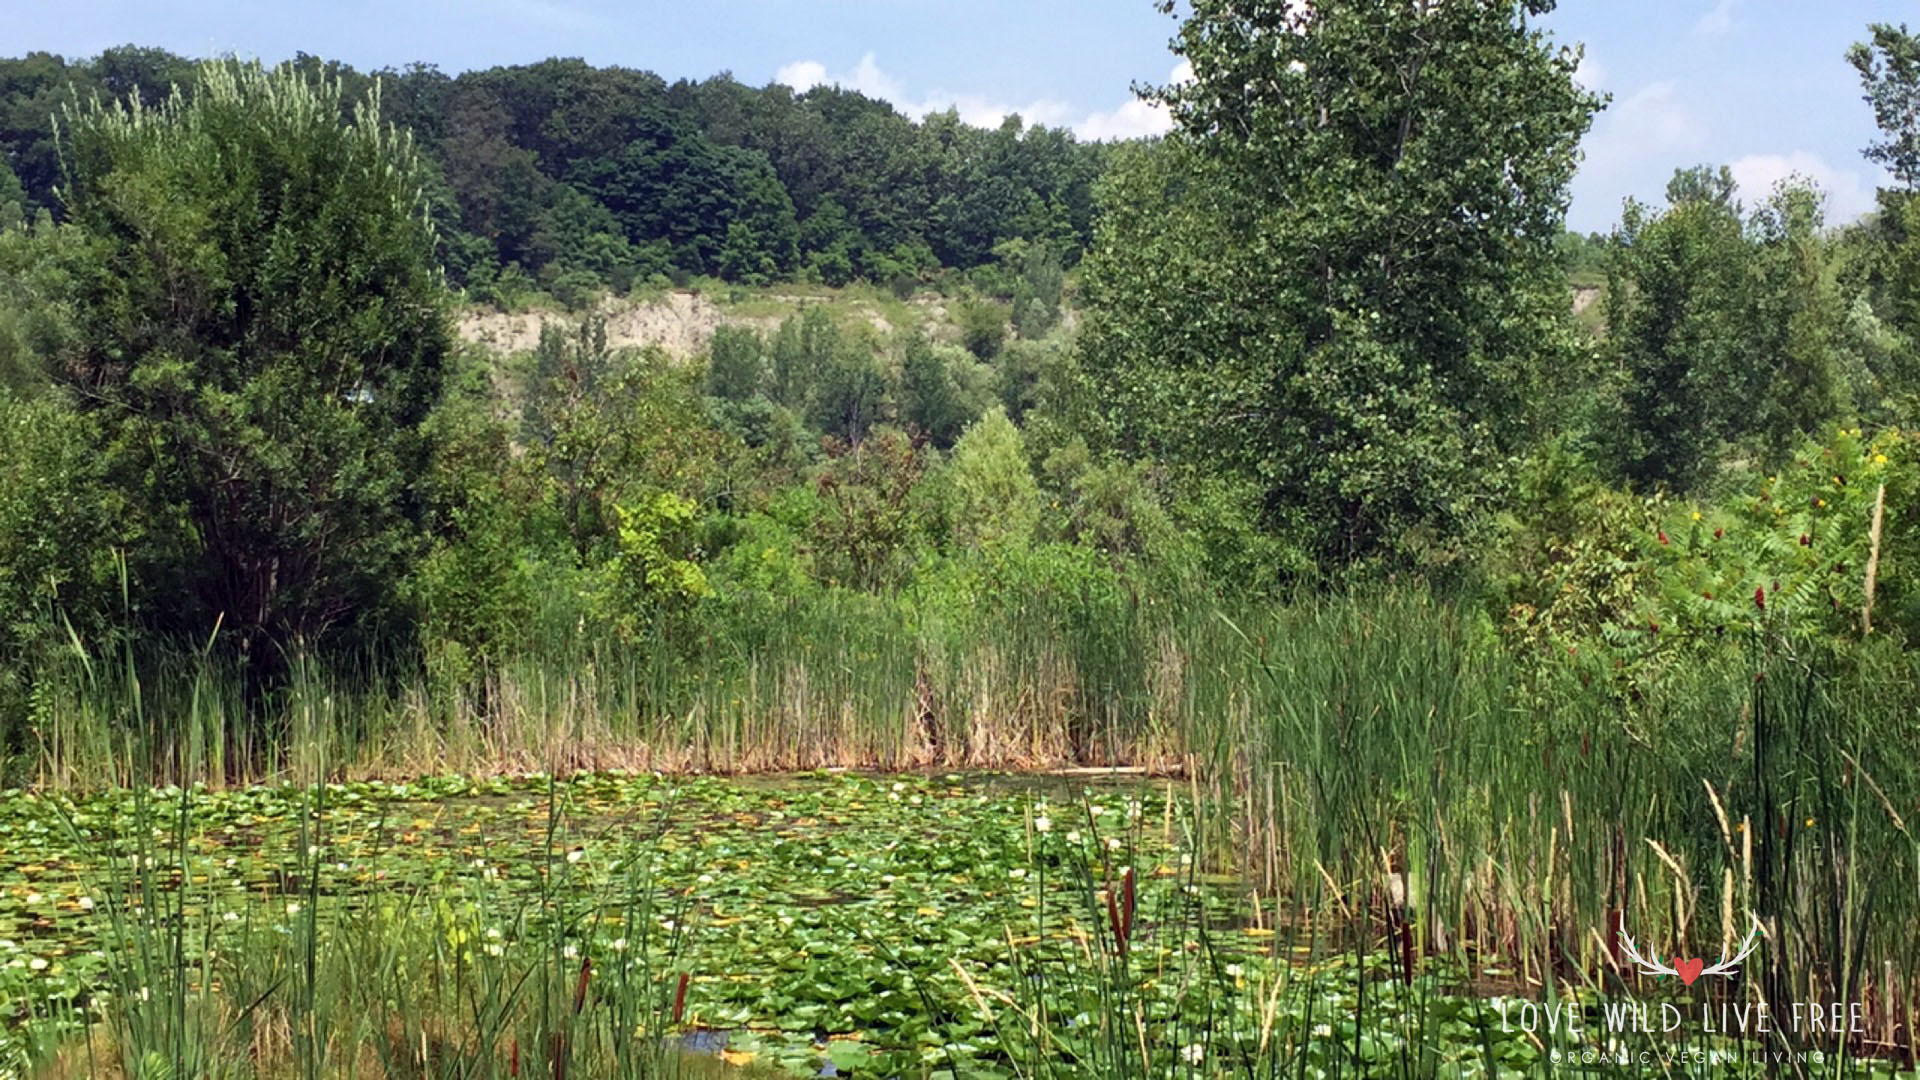 Lily pads and marsh vegetation at Toronto's Evergreen Brick Works.  Photo by LoveWildLiveFree.